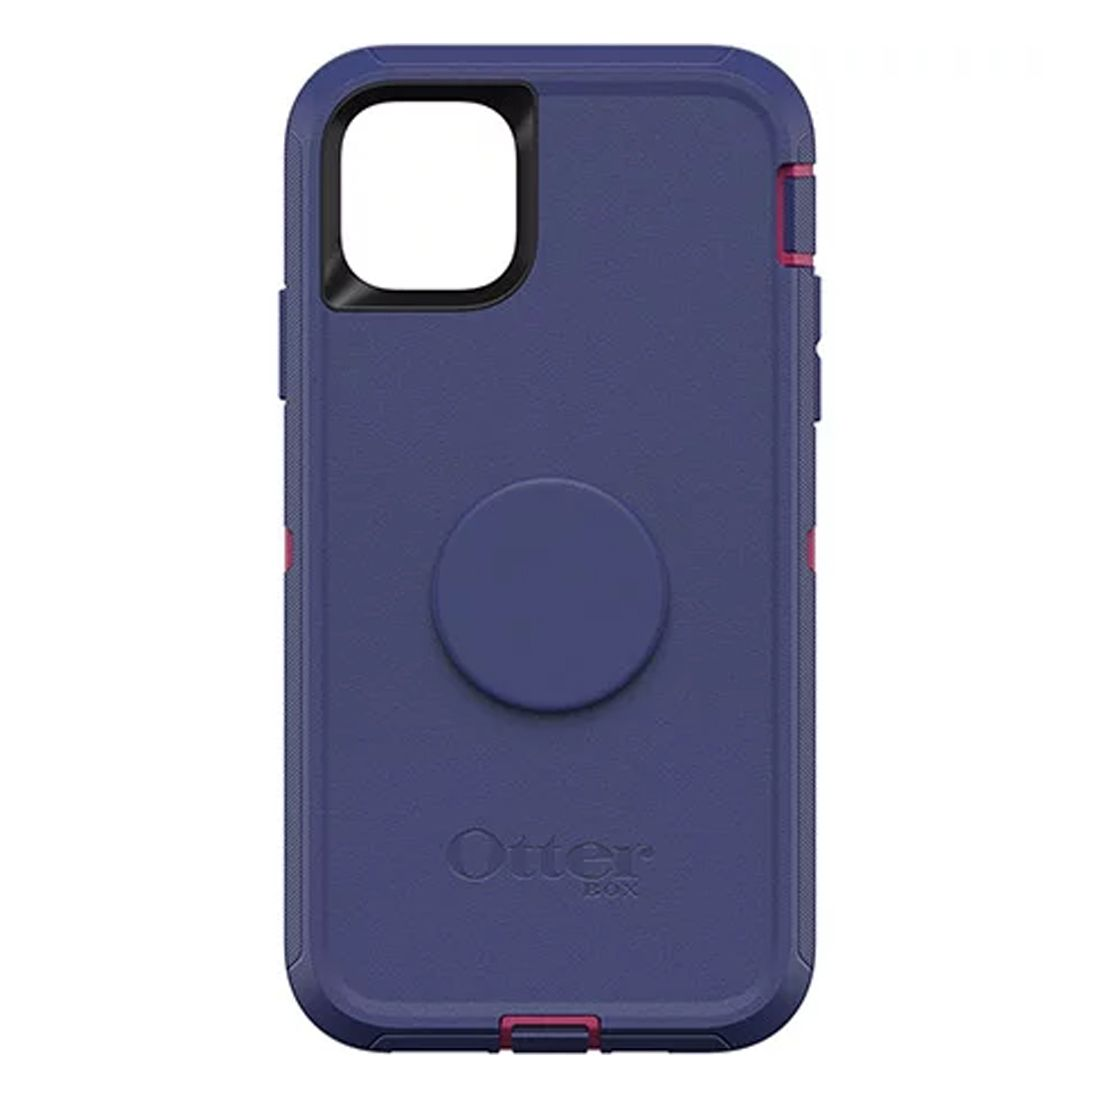 Otterbox Otter + Pop Defender Case for Apple iPhone 11 Pro Max - Grape Jelly Purple